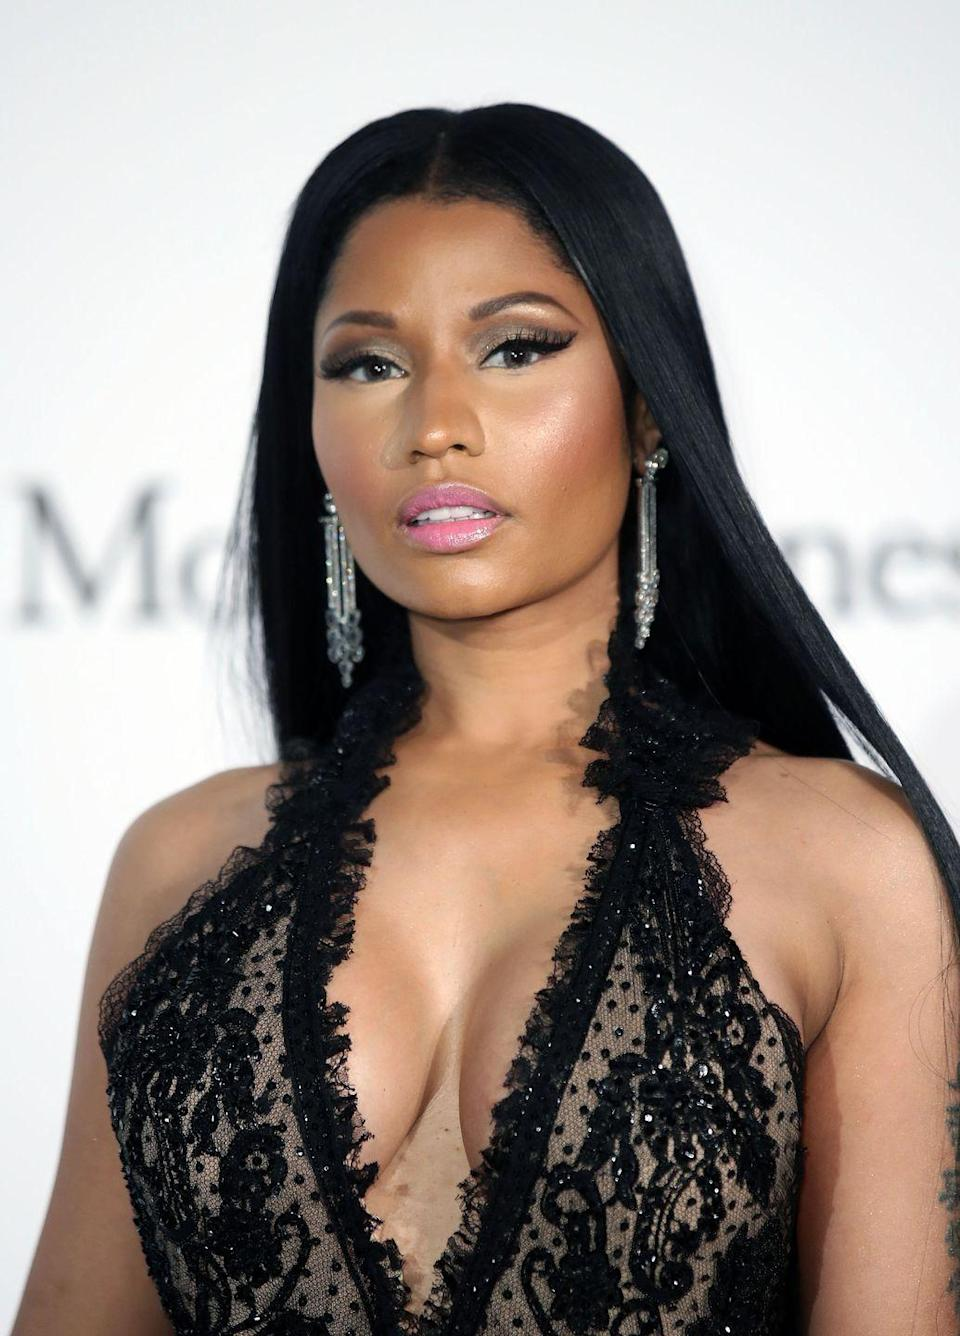 """<p><strong>Real name: </strong>Onika Tanya Maraj</p><p>""""One of the first production deals I signed, the guy wanted my name to be Minaj and I fought him tooth and nail. But he convinced me. I've always hated it,"""" she told <a href=""""https://www.theguardian.com/music/2012/apr/27/nicki-minaj-bigger-balls-than-the-boys"""" rel=""""nofollow noopener"""" target=""""_blank"""" data-ylk=""""slk:The Guardian"""" class=""""link rapid-noclick-resp"""">The Guardian</a>.</p>"""